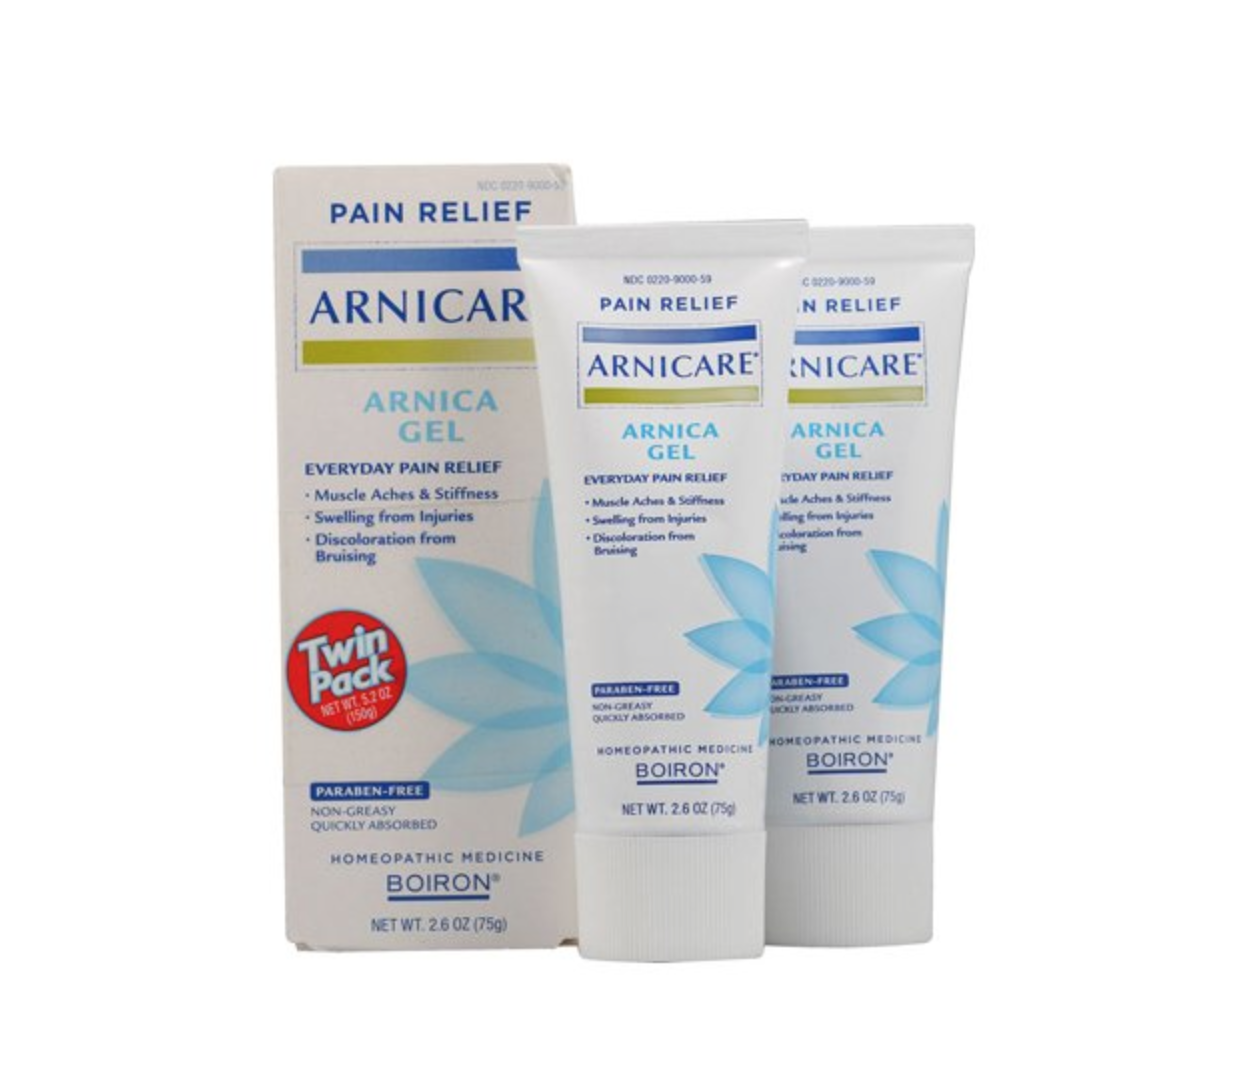 Arnica Gel - Pain Relief